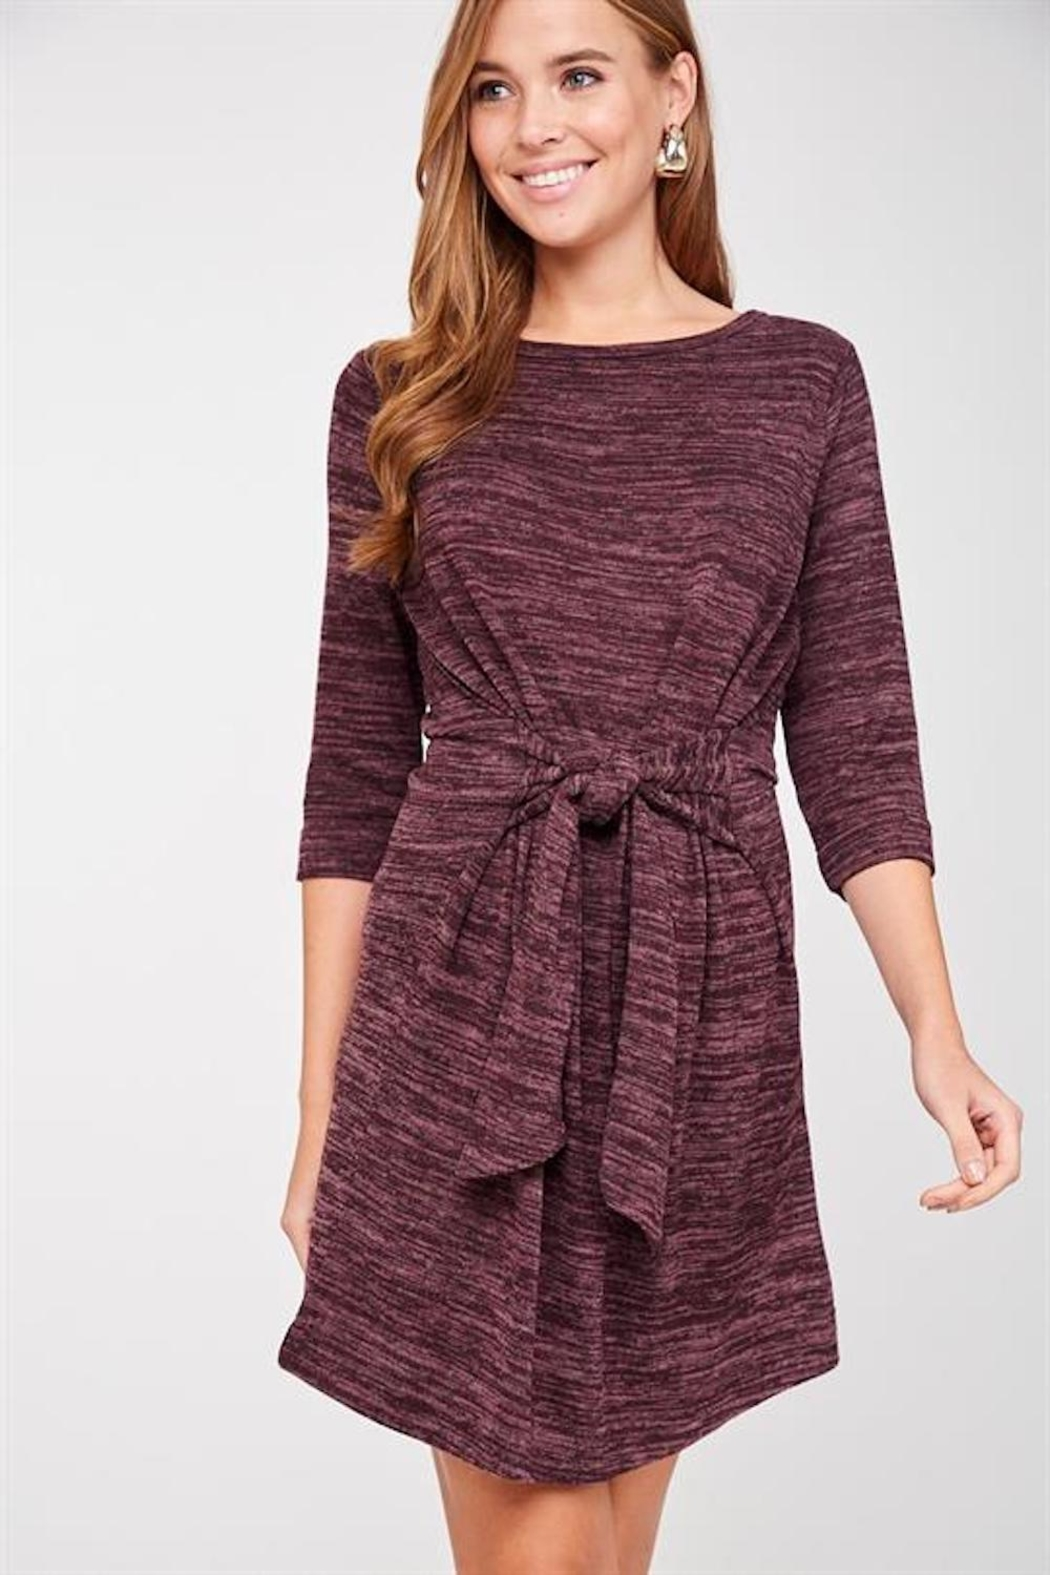 LLove Plum Soft Tie Dress - Main Image